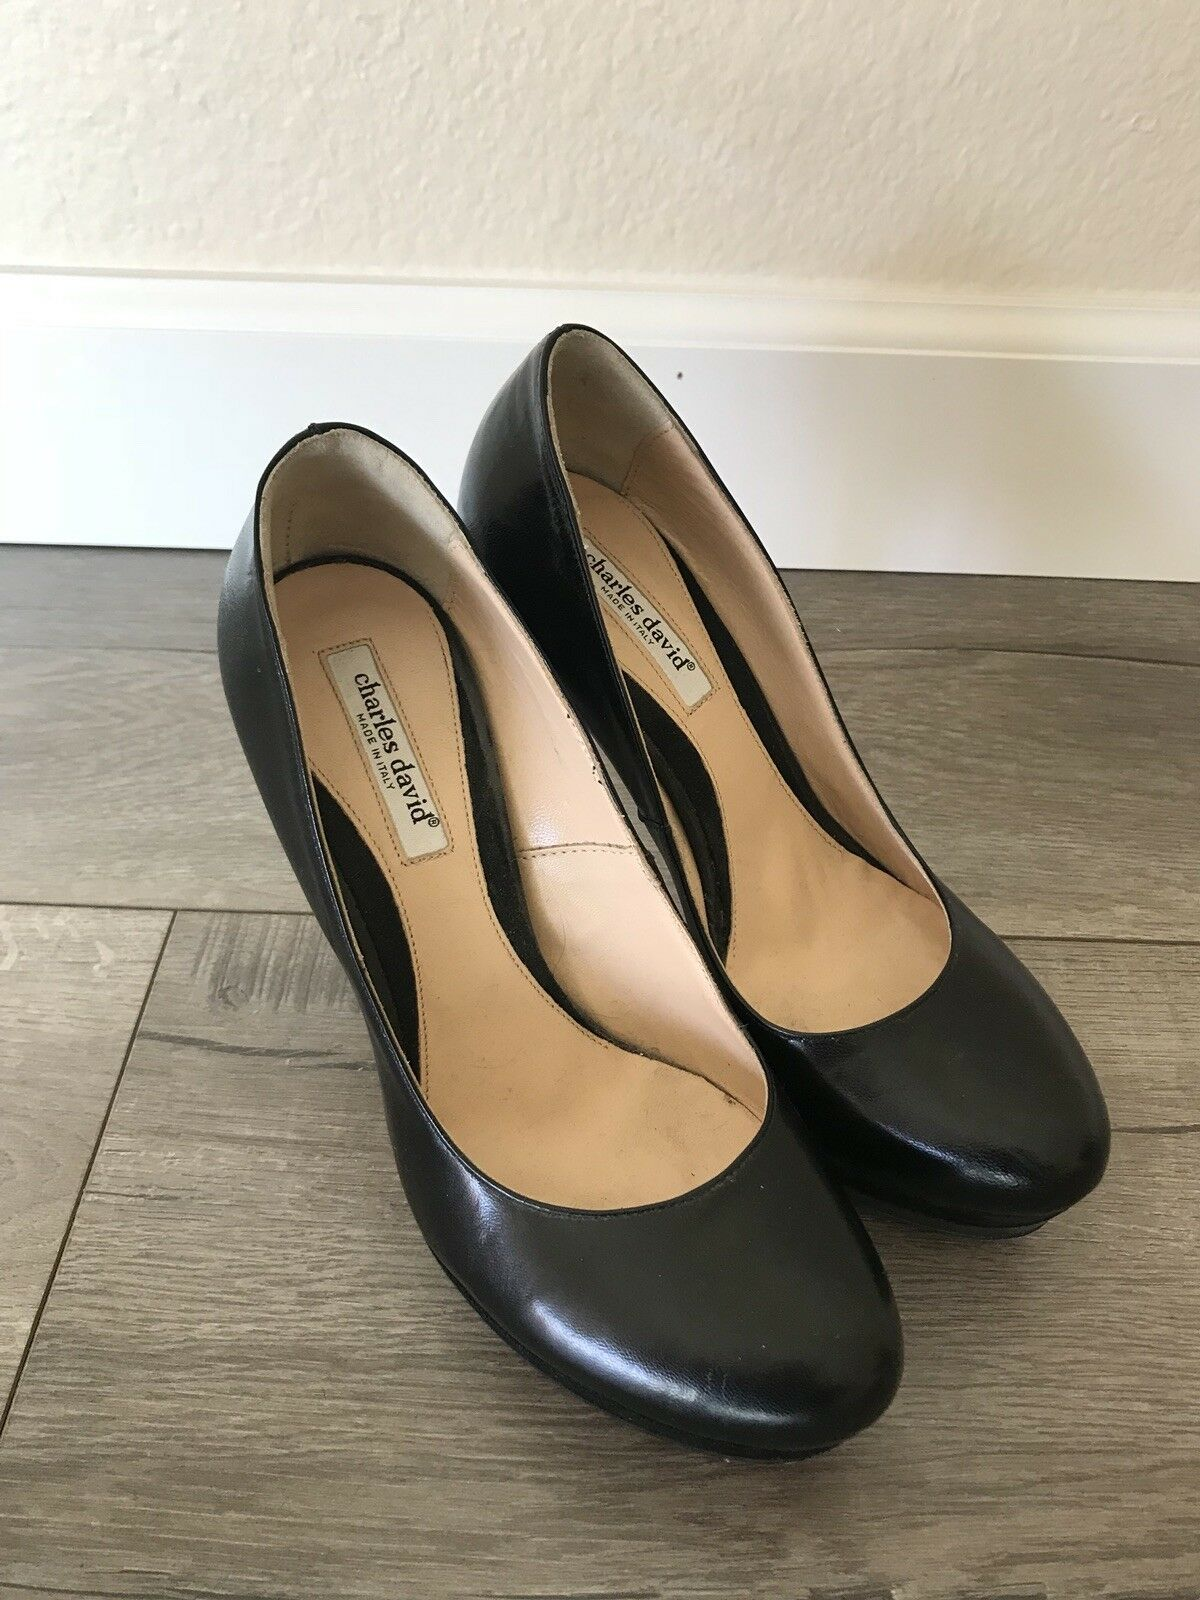 Charles David Classic Pump Heels Made in Italy Black, size 7